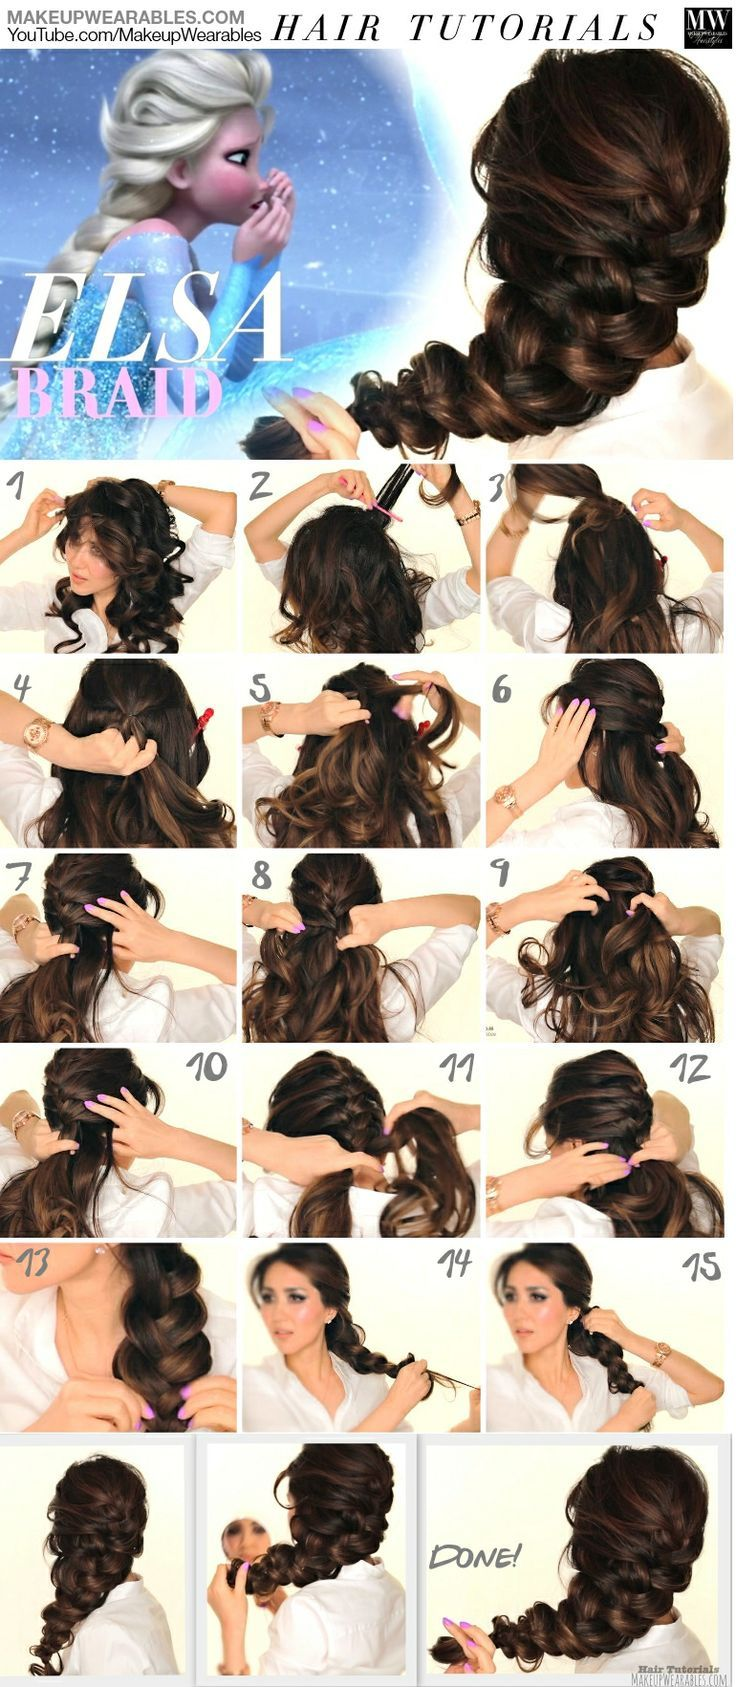 Elsa Frozen Hairstyle Step By Step Hair Tutorial Awesome Hair Going To Have To Try This Hair Styles Elsa Hair Long Hair Styles